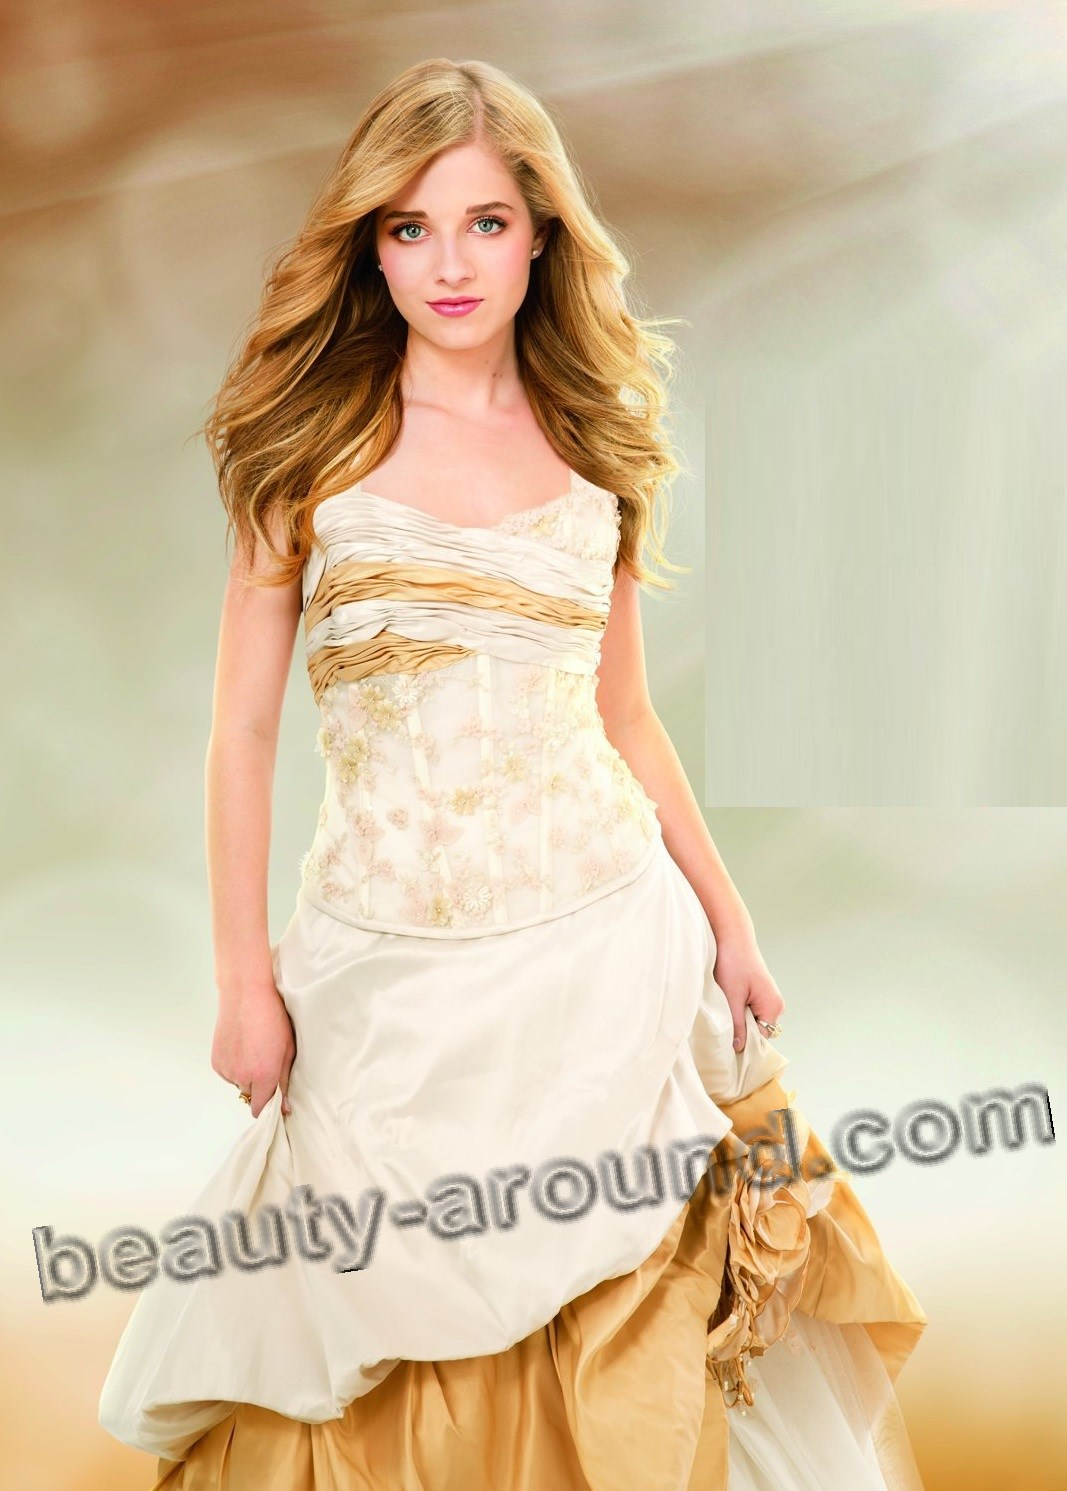 Jackie Evancho American classical crossover singer photo